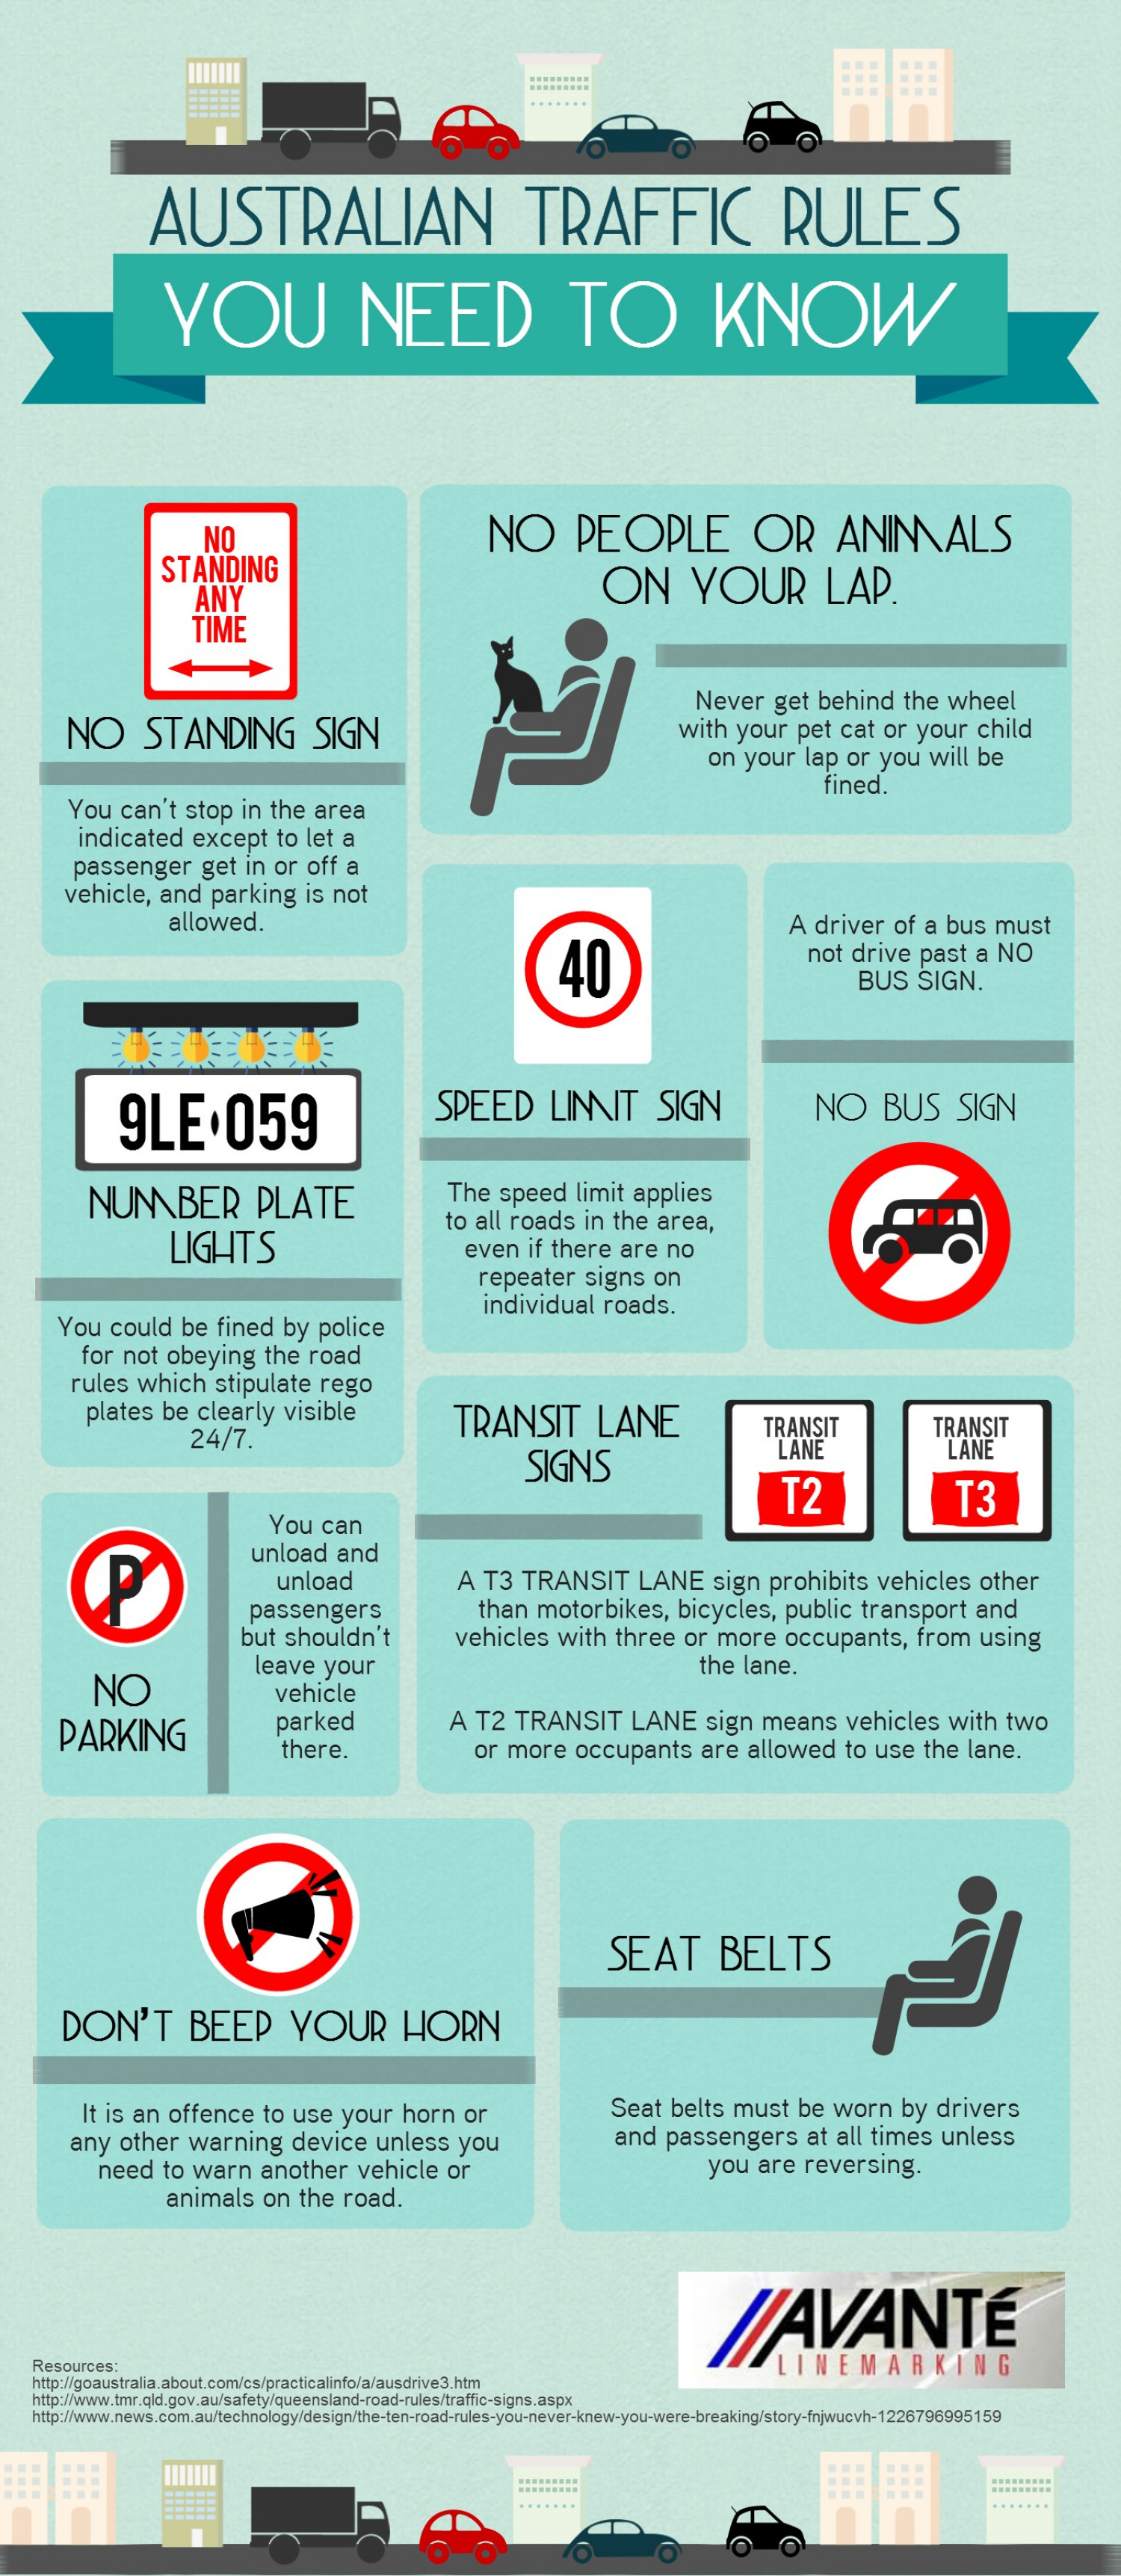 Australian Traffic Rules you Need to Know Infographic